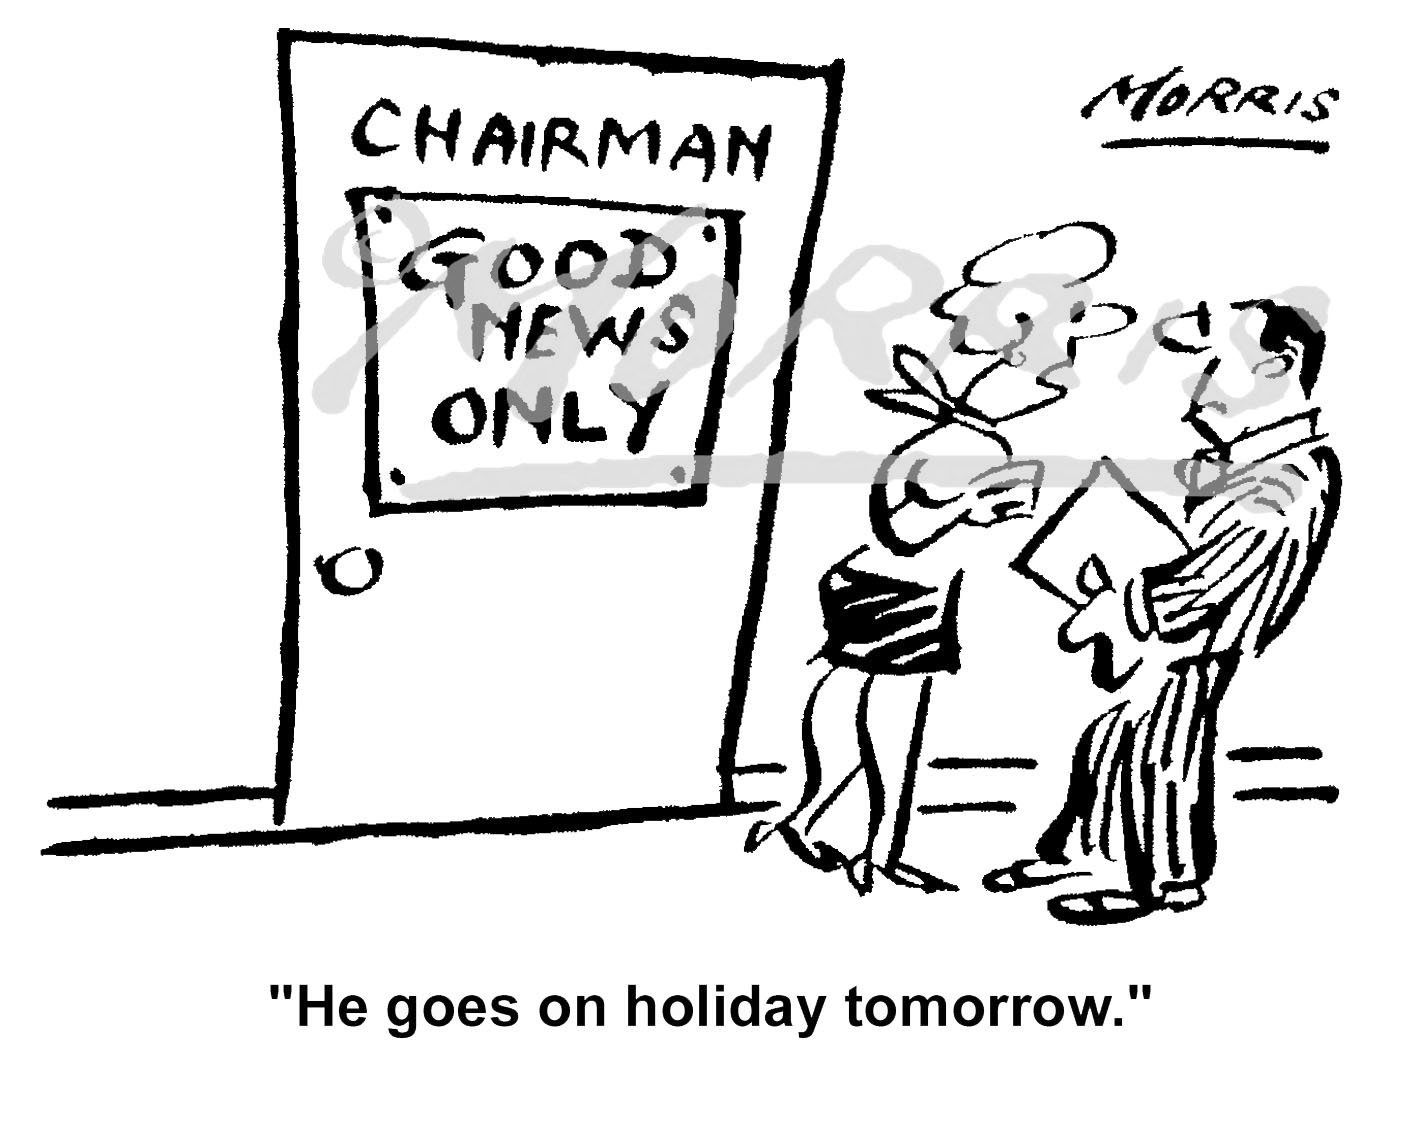 President, Chairman, Chief Executive officer 'good news only' business cartoon – Ref: 6217bw